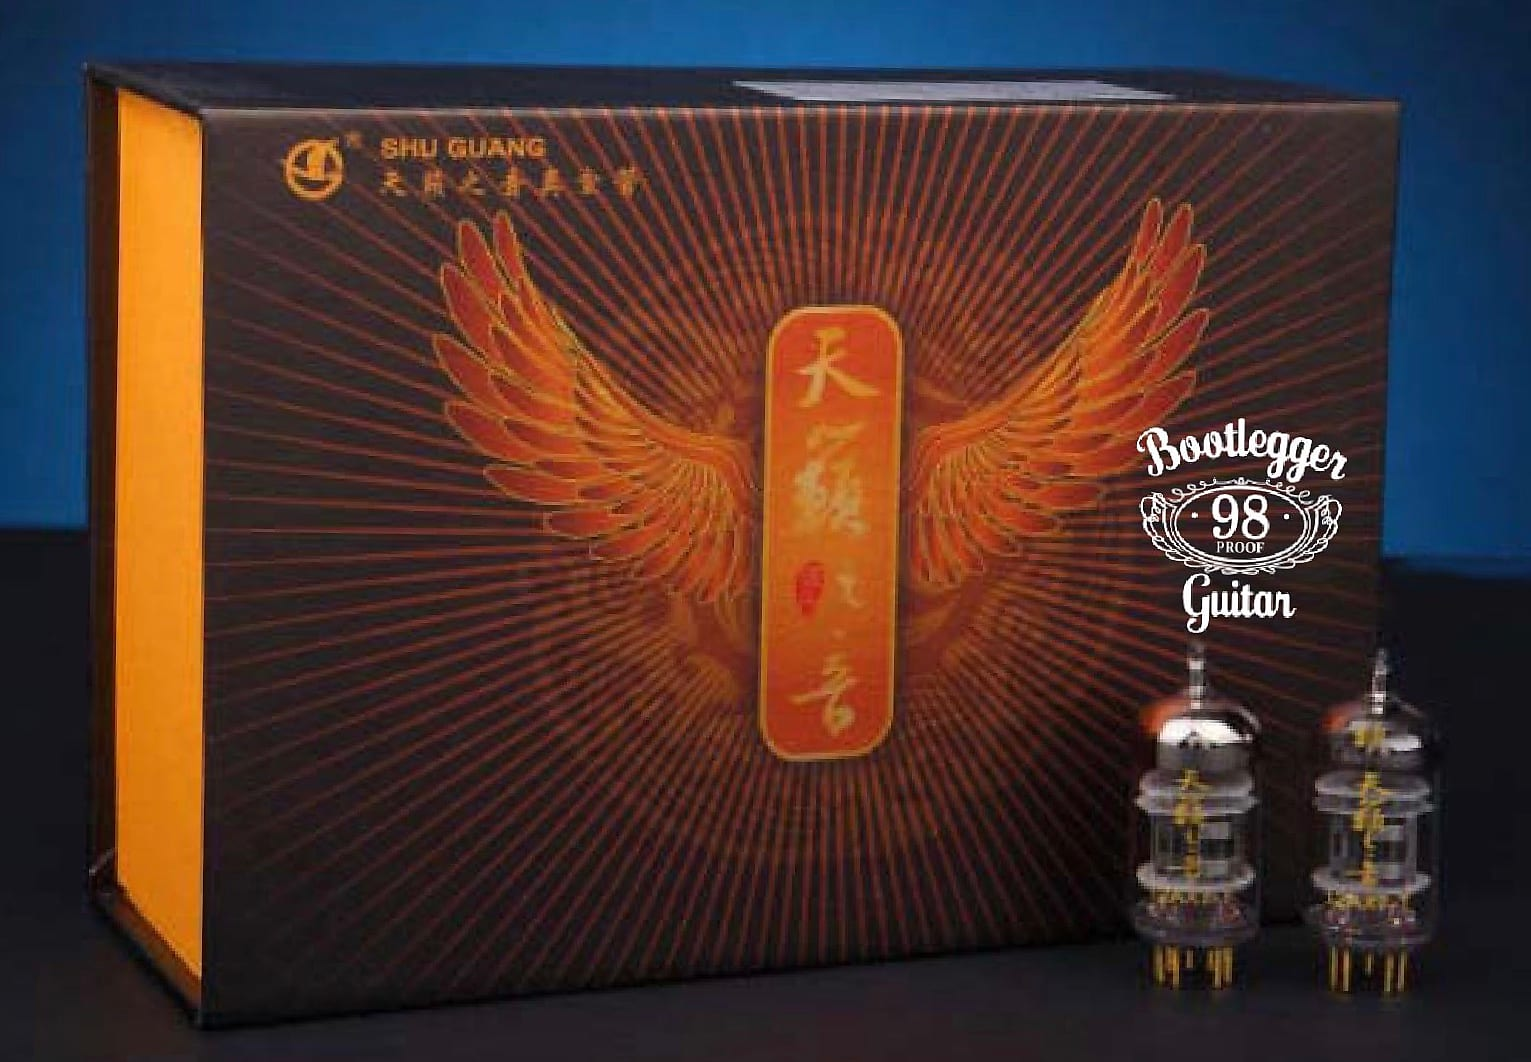 Bootlegger Guitar  Matched Set Gold Plated Nature Sound tube 12AT7-T Factory Matched Shu Guang